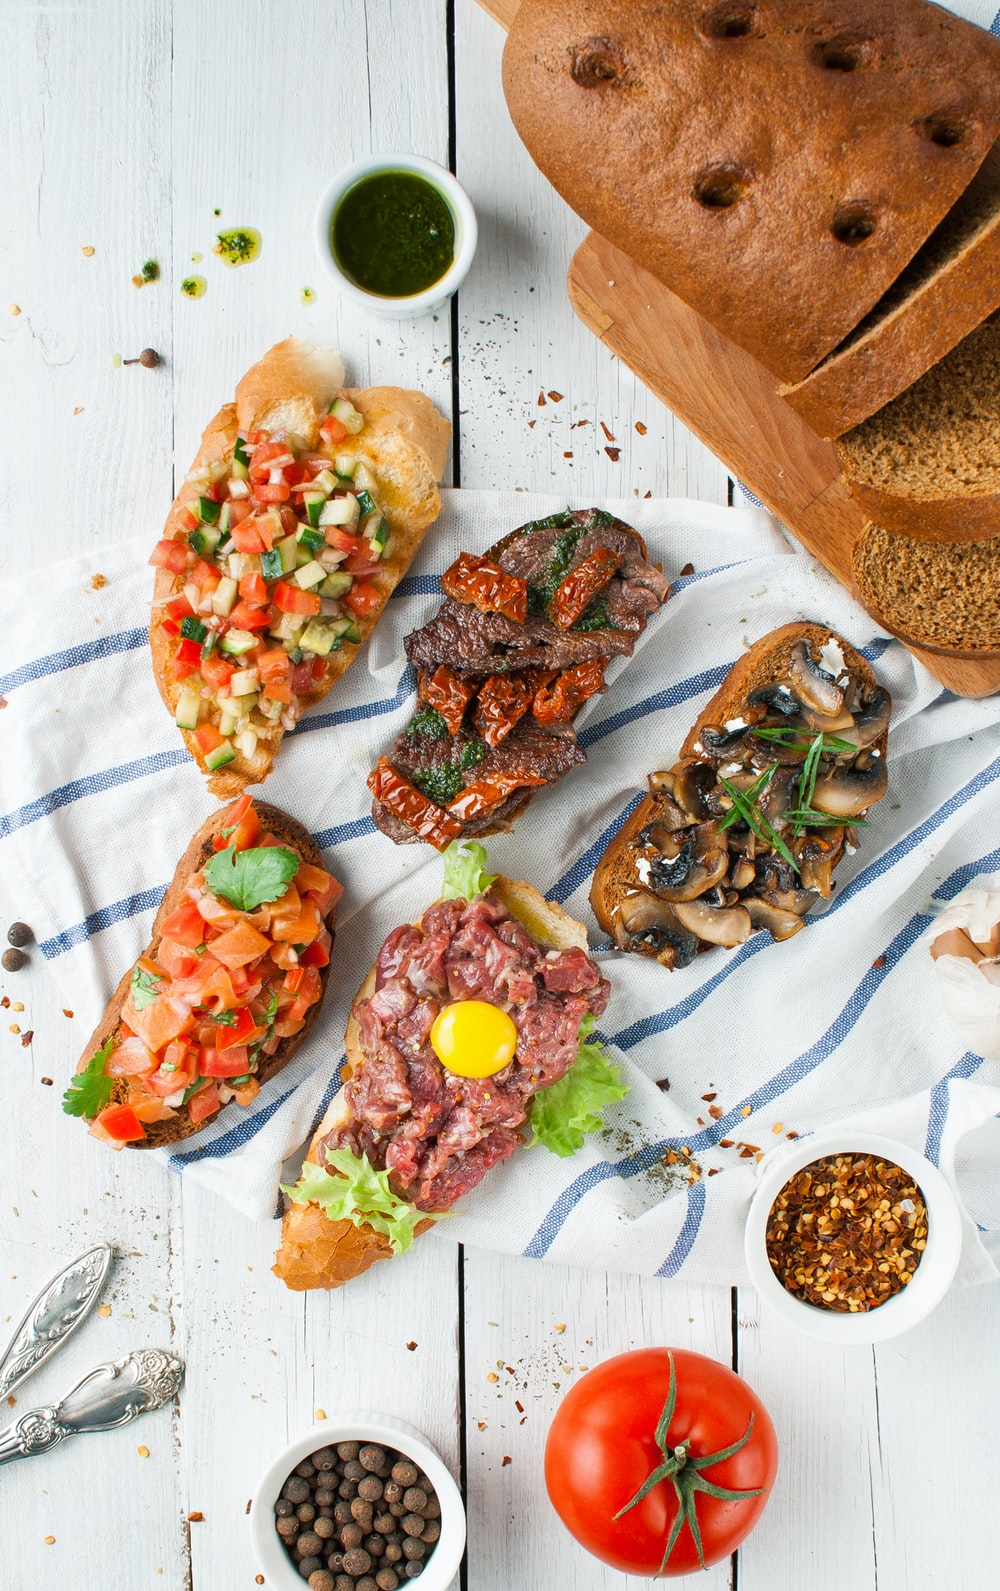 flay lay photography of sliced breads with beef and vegetables on top and dips